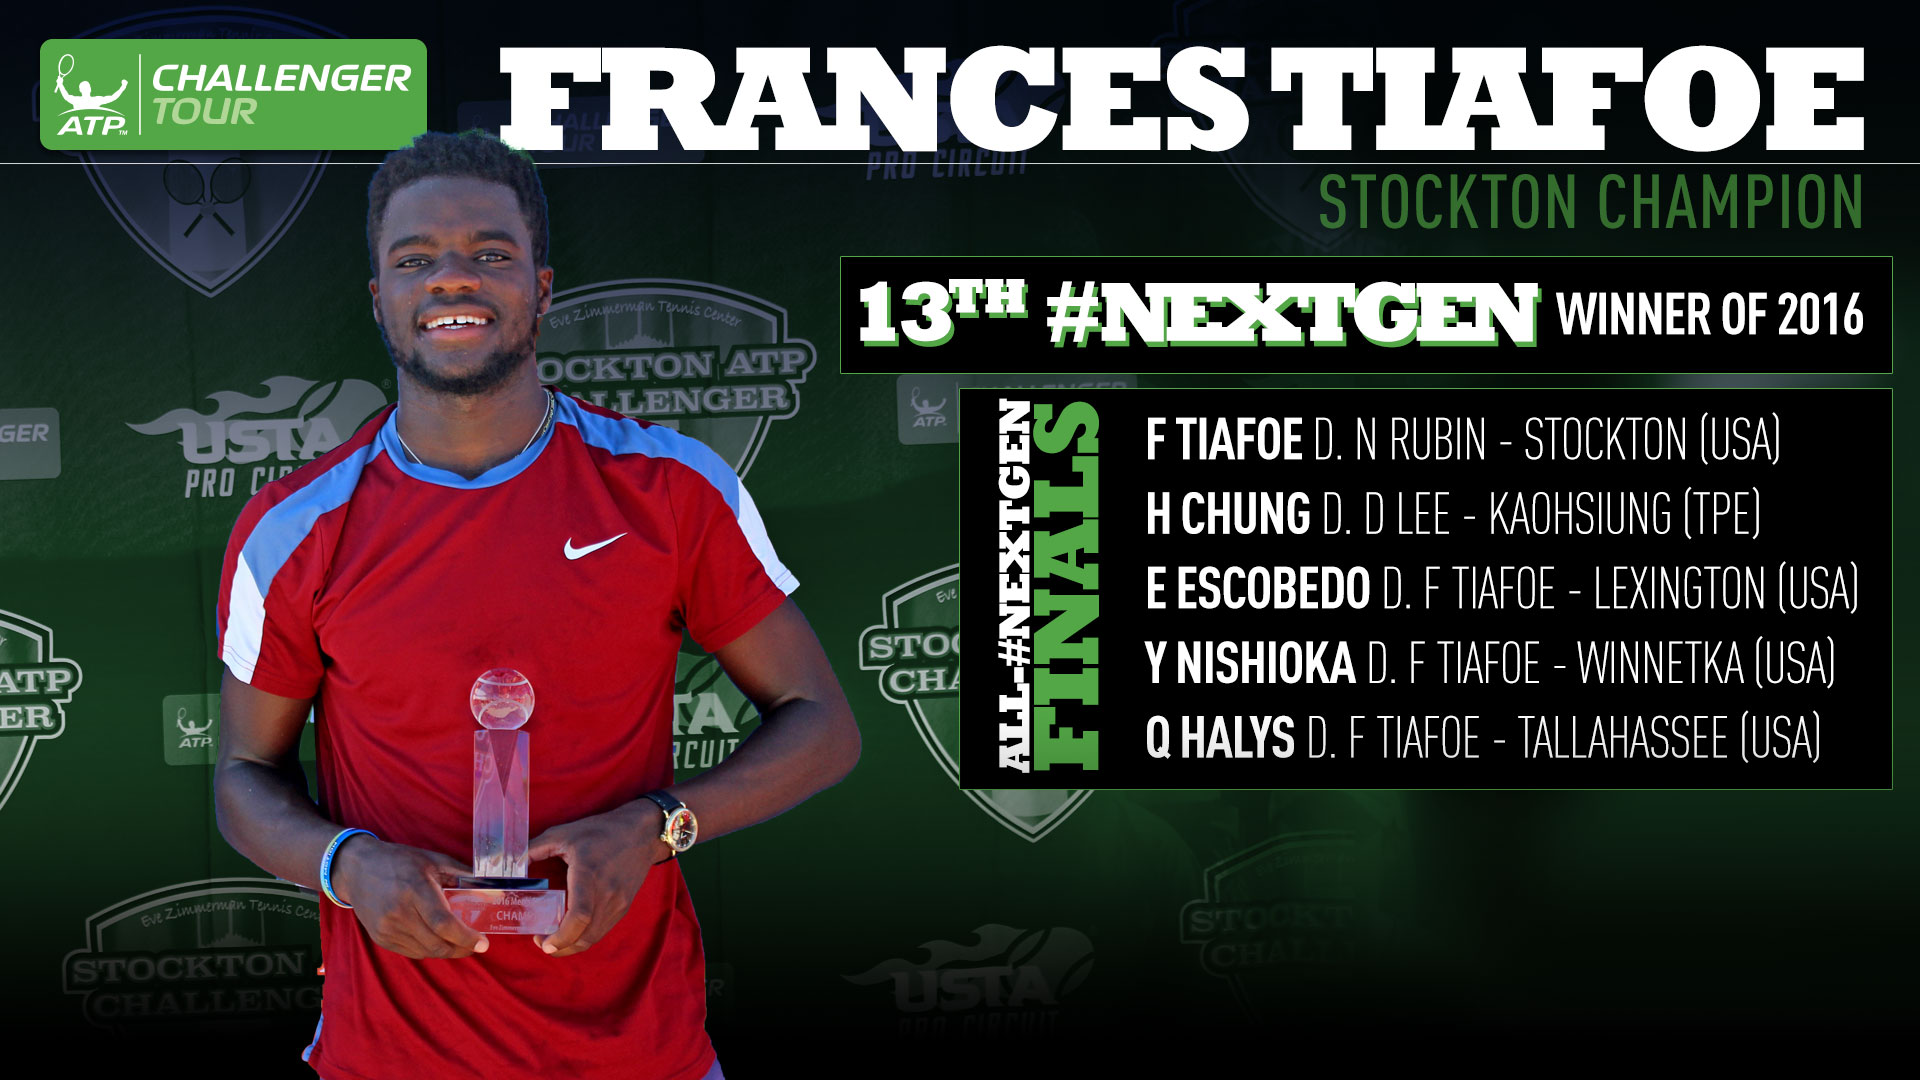 Frances Tiafoe reacts to winning his second ATP Challenger Tour title of 2016.